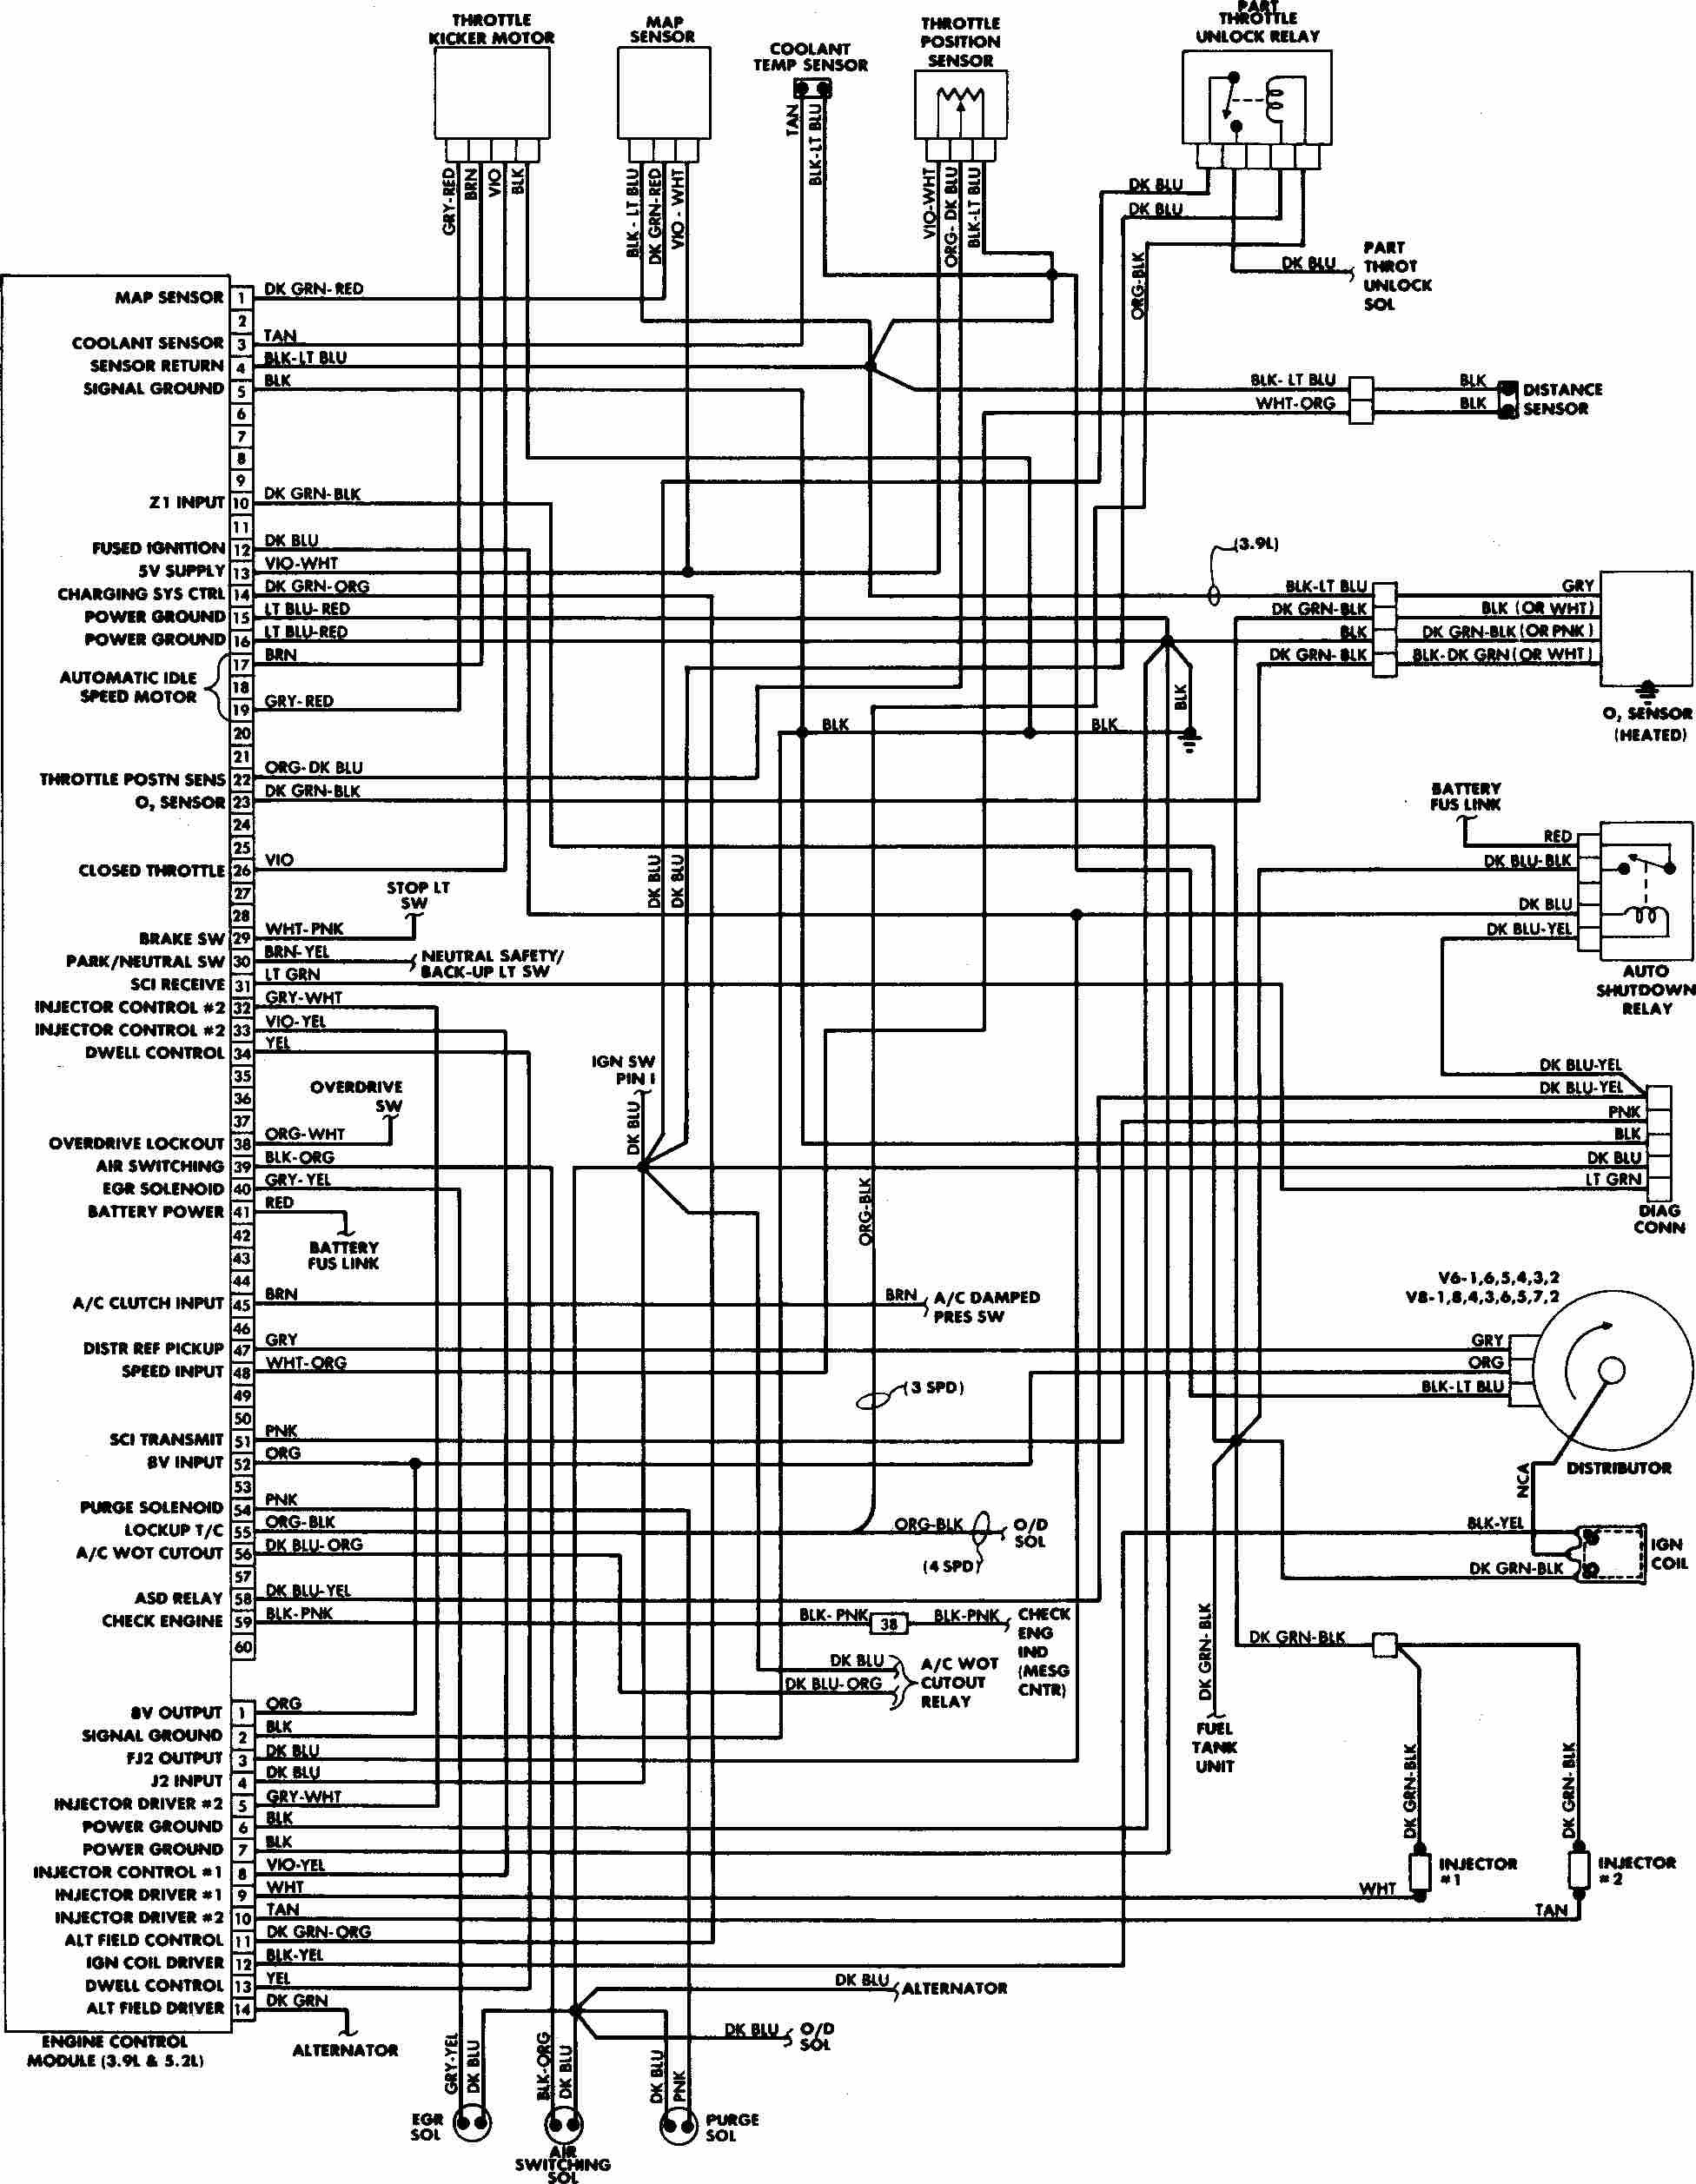 Wiring Diagram On 76 Chevy Truck